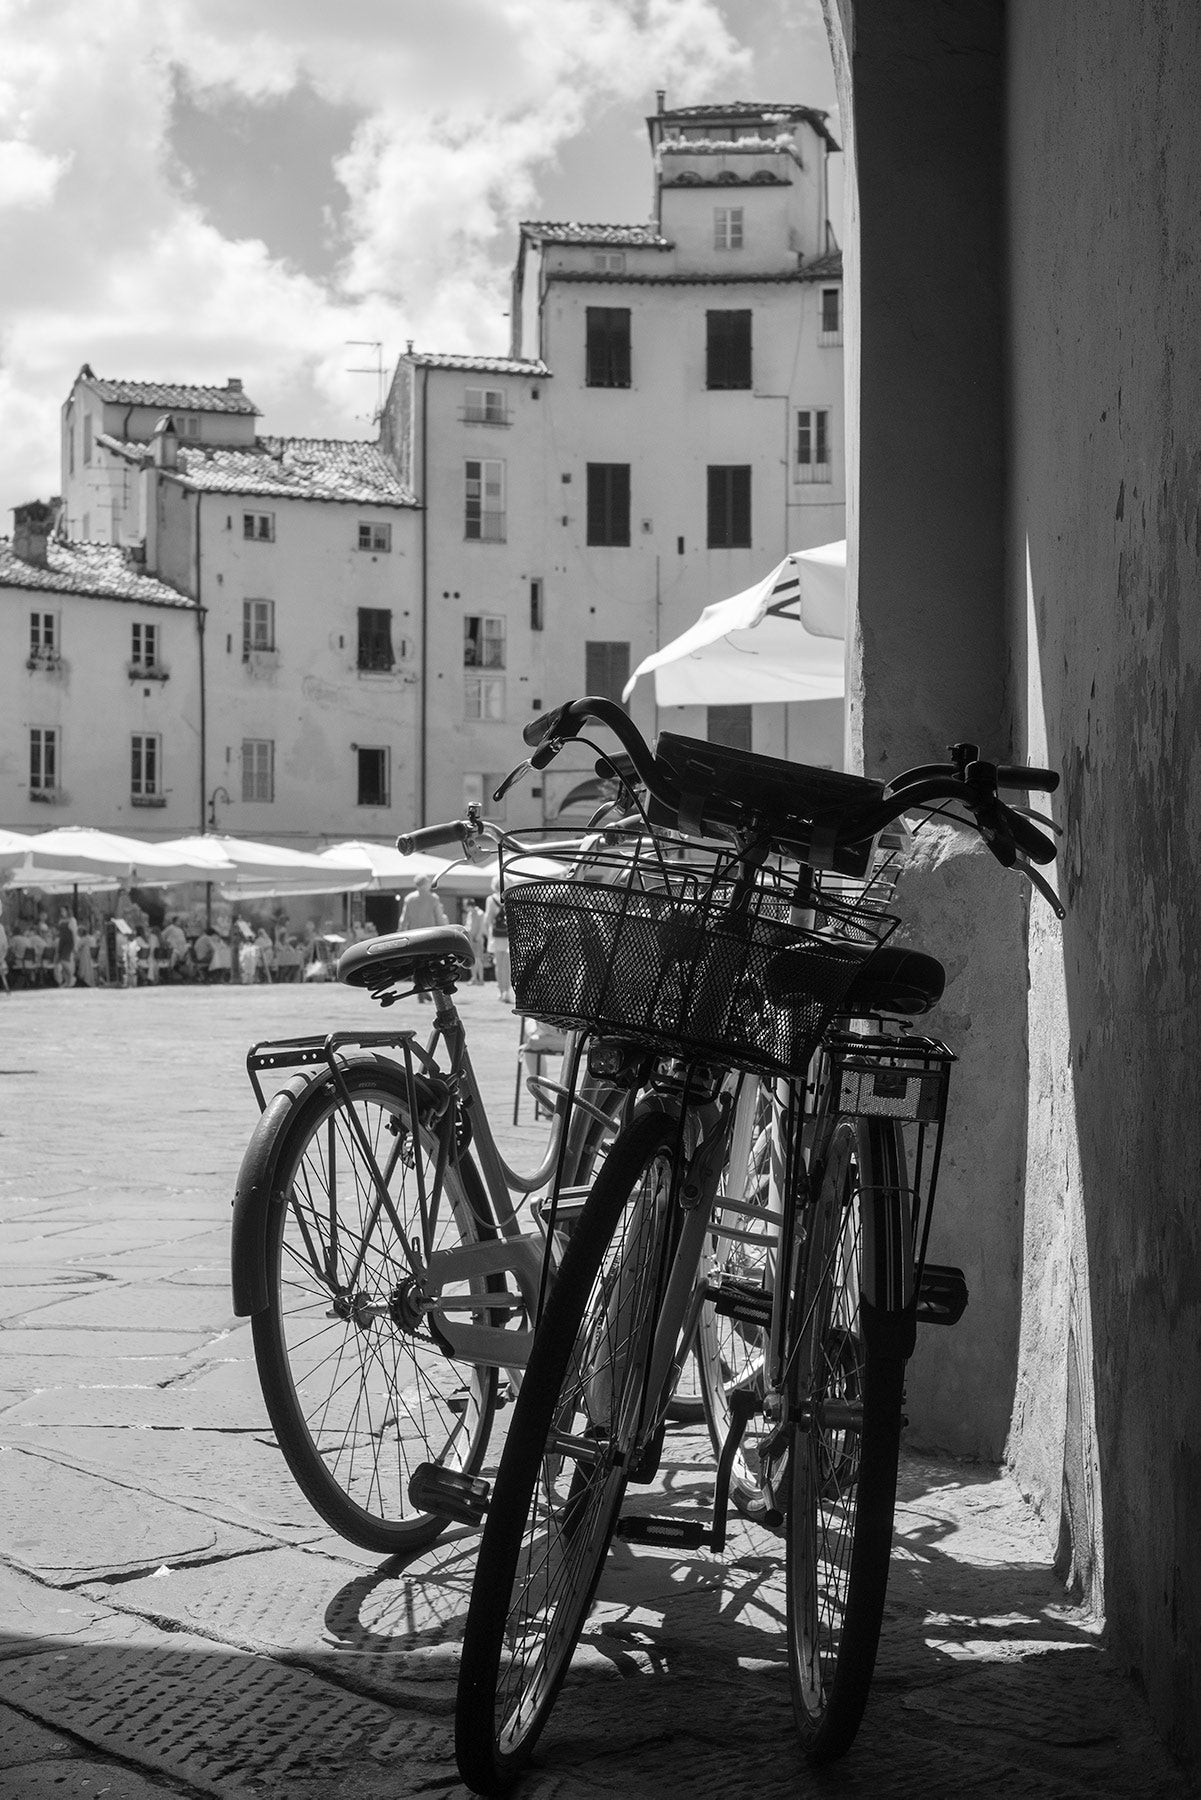 Black and White image looking past three bicycles leant against a wall into Piazza dell'Anfiteatro, the oval shaped piazza in Lucca, Italy.